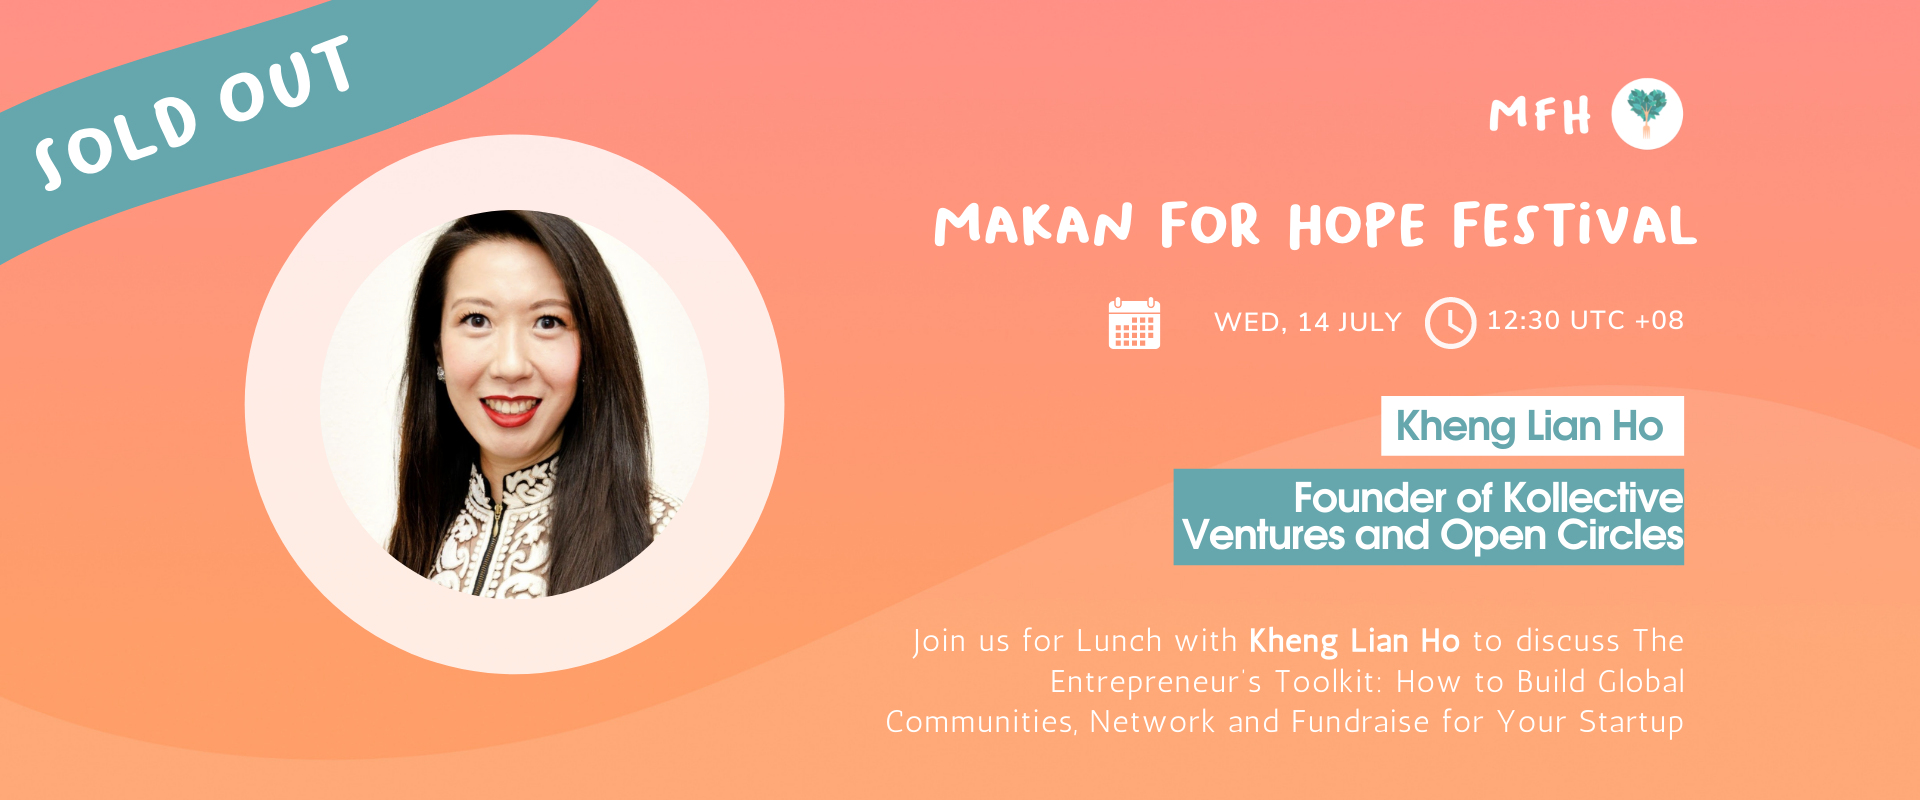 [SOLD OUT!] Kheng Lian Ho - The Entrepreneur's Toolkit: How to Build Global Communities, Network and Fundraise for Your Startup Banner Image